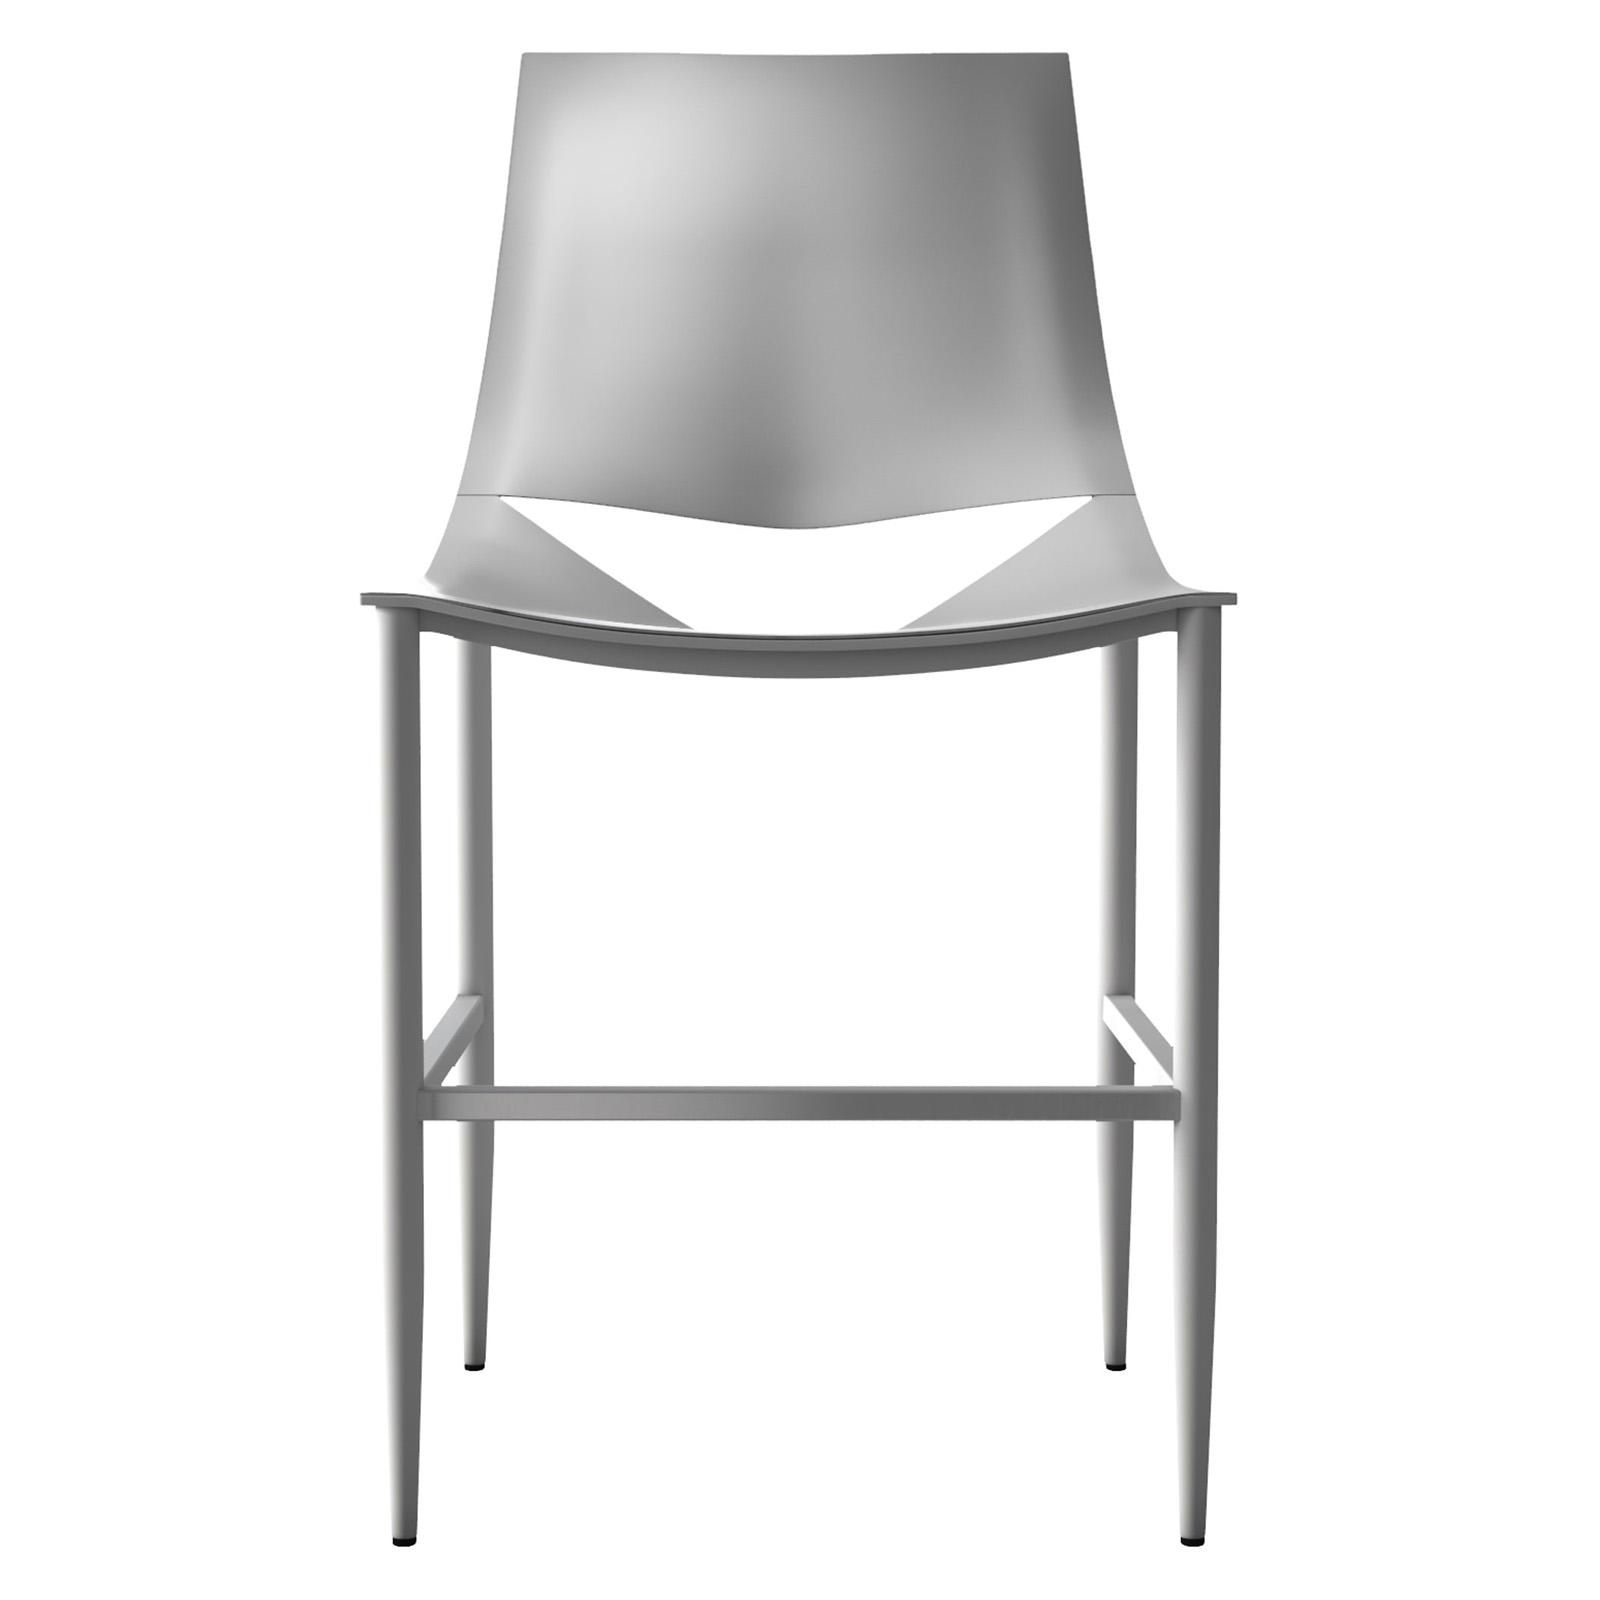 Modloft Sloane Armless Counter Stool Alpine - BQM228-PBCC00